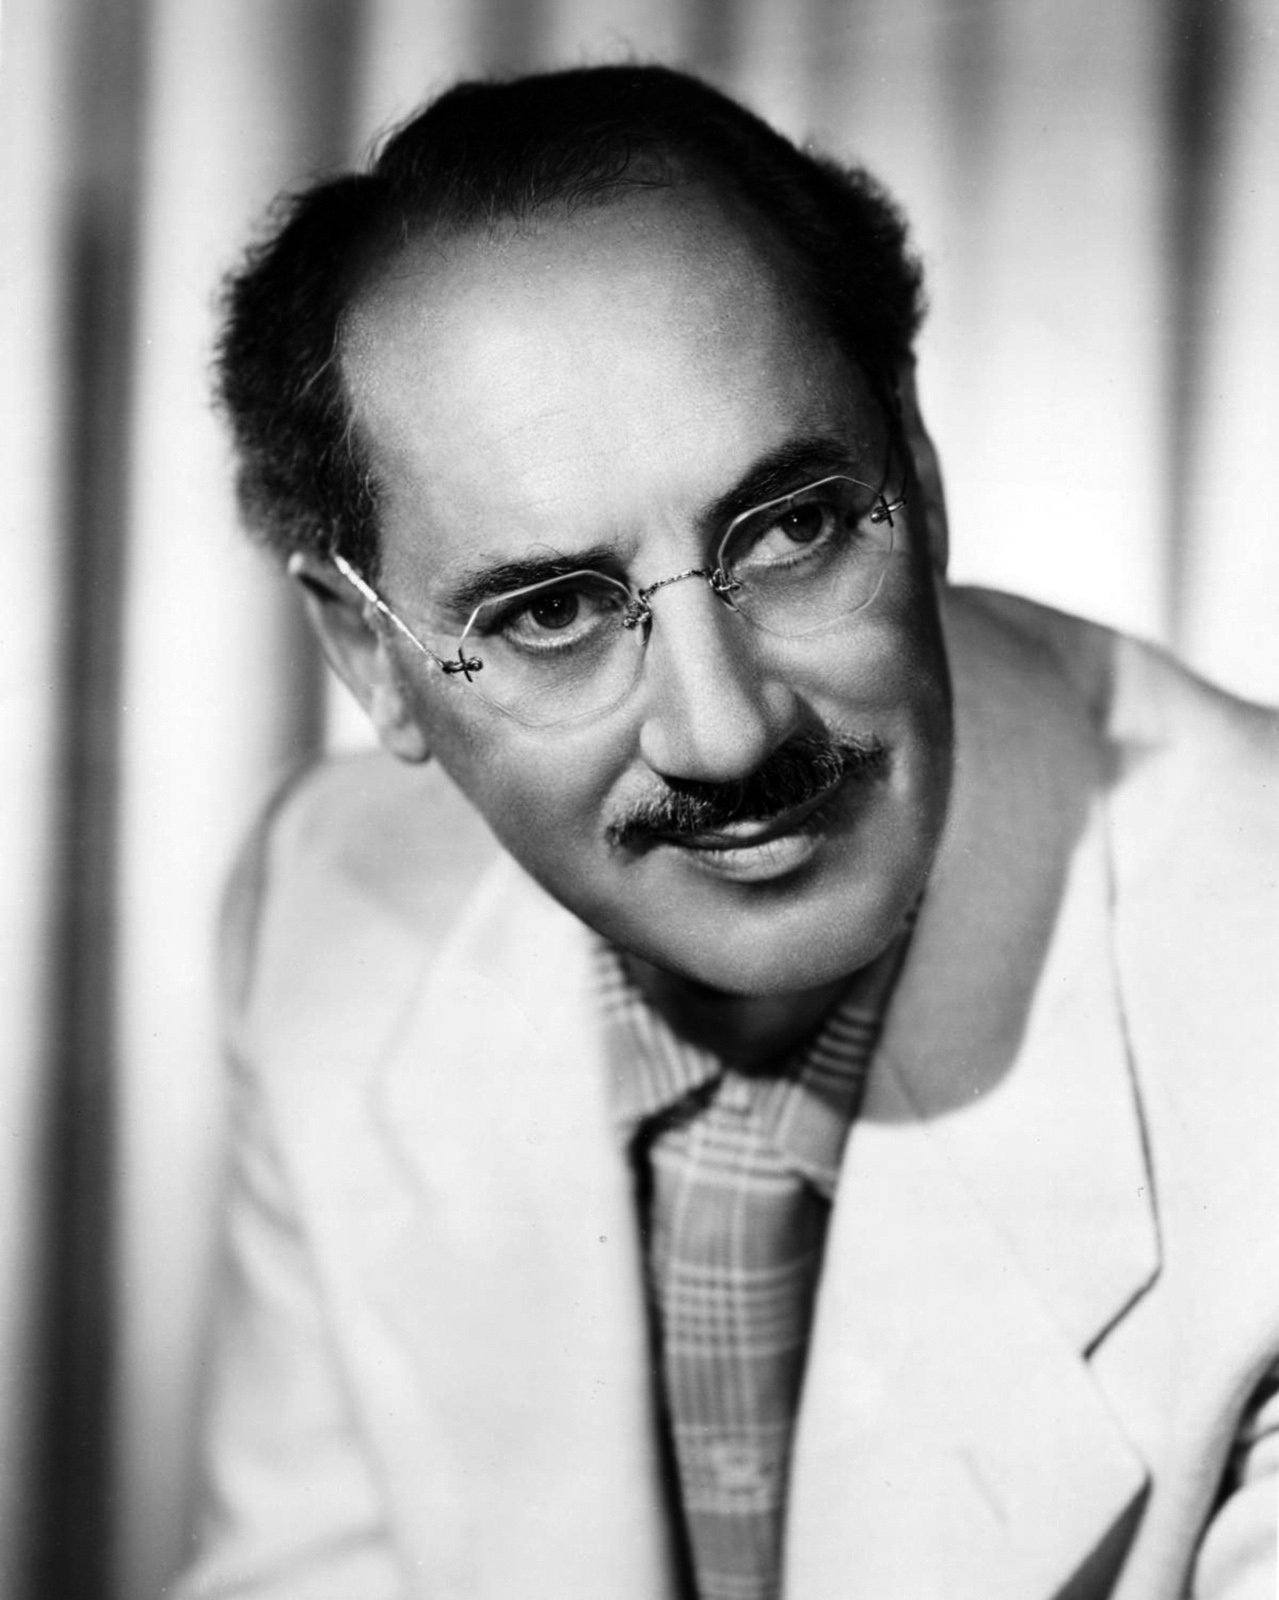 groucho marx ieltsgroucho marx arthur sheekman, groucho marx arthur sheekman reading, groucho marx quotes, groucho marx glasses, groucho marx bill cosby youtube, groucho marx club, groucho marx and charlie chaplin, groucho marx and alice cooper, groucho marx mbti, groucho marx wiki, groucho marx citati, groucho marx frasi, groucho marx arthur sheekman answer, groucho marx one liners, groucho marx cartoon, groucho marx bio, groucho marx amazon, groucho marx ielts, groucho marx pronounce, groucho marx quotations